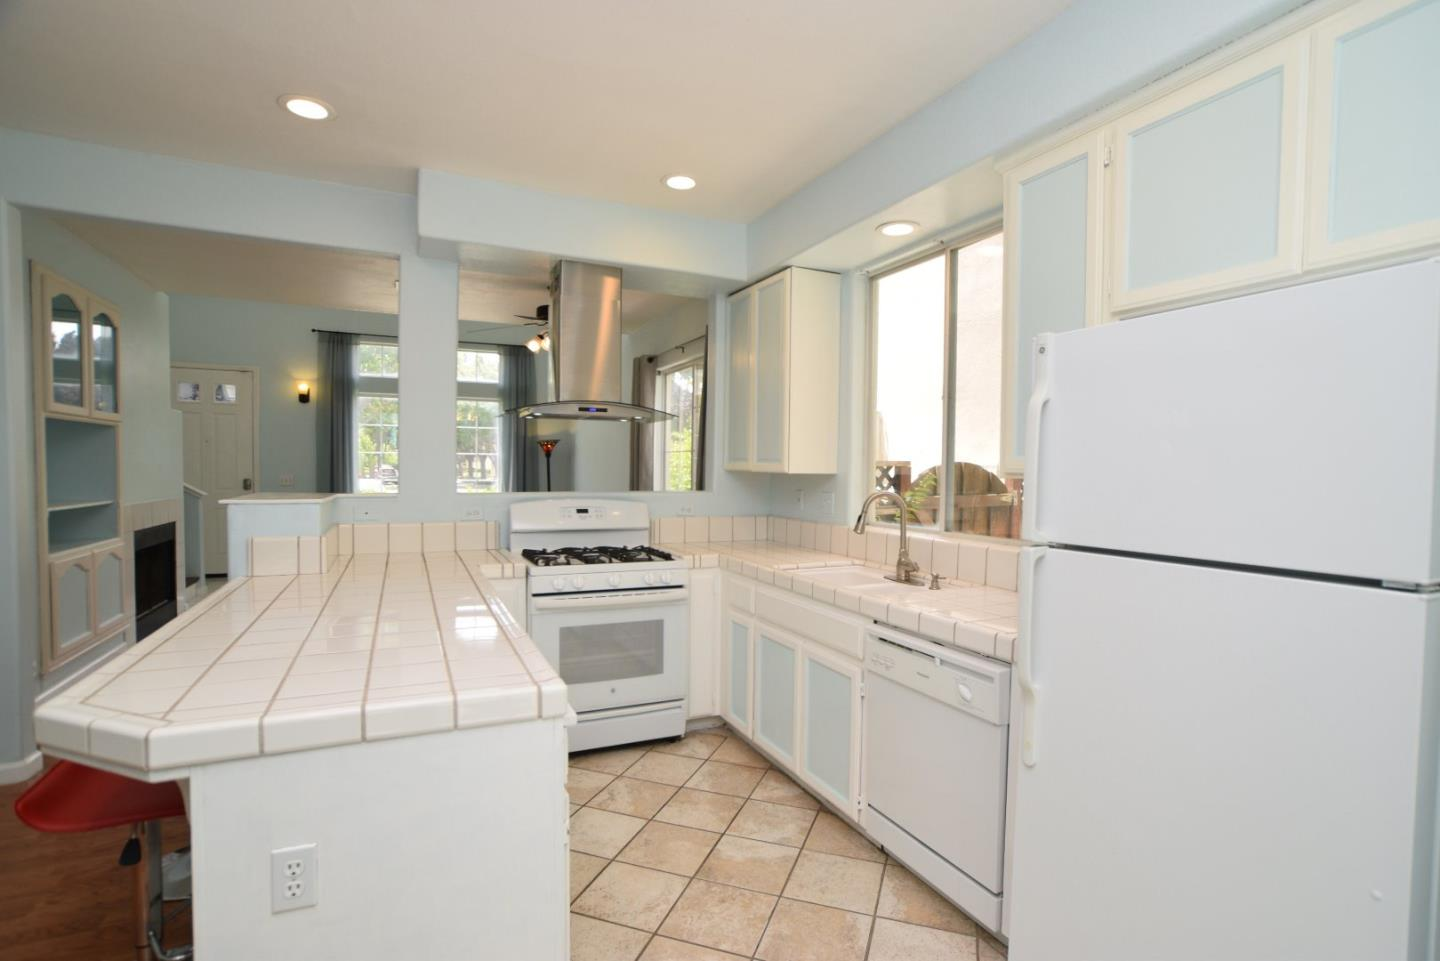 Additional photo for property listing at 267 Holland Circle  Hollister, California 95023 Estados Unidos